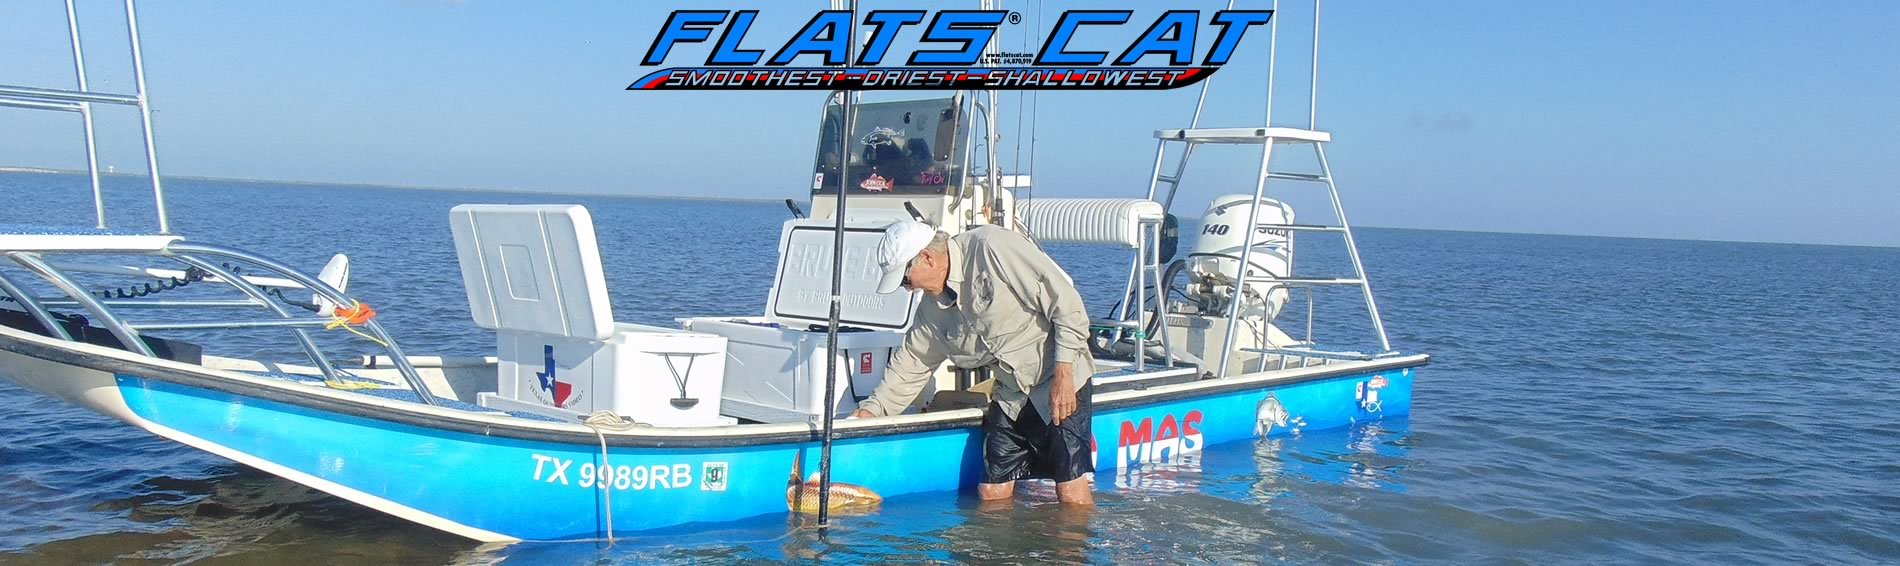 Flats Cat Shallow Draft Boats